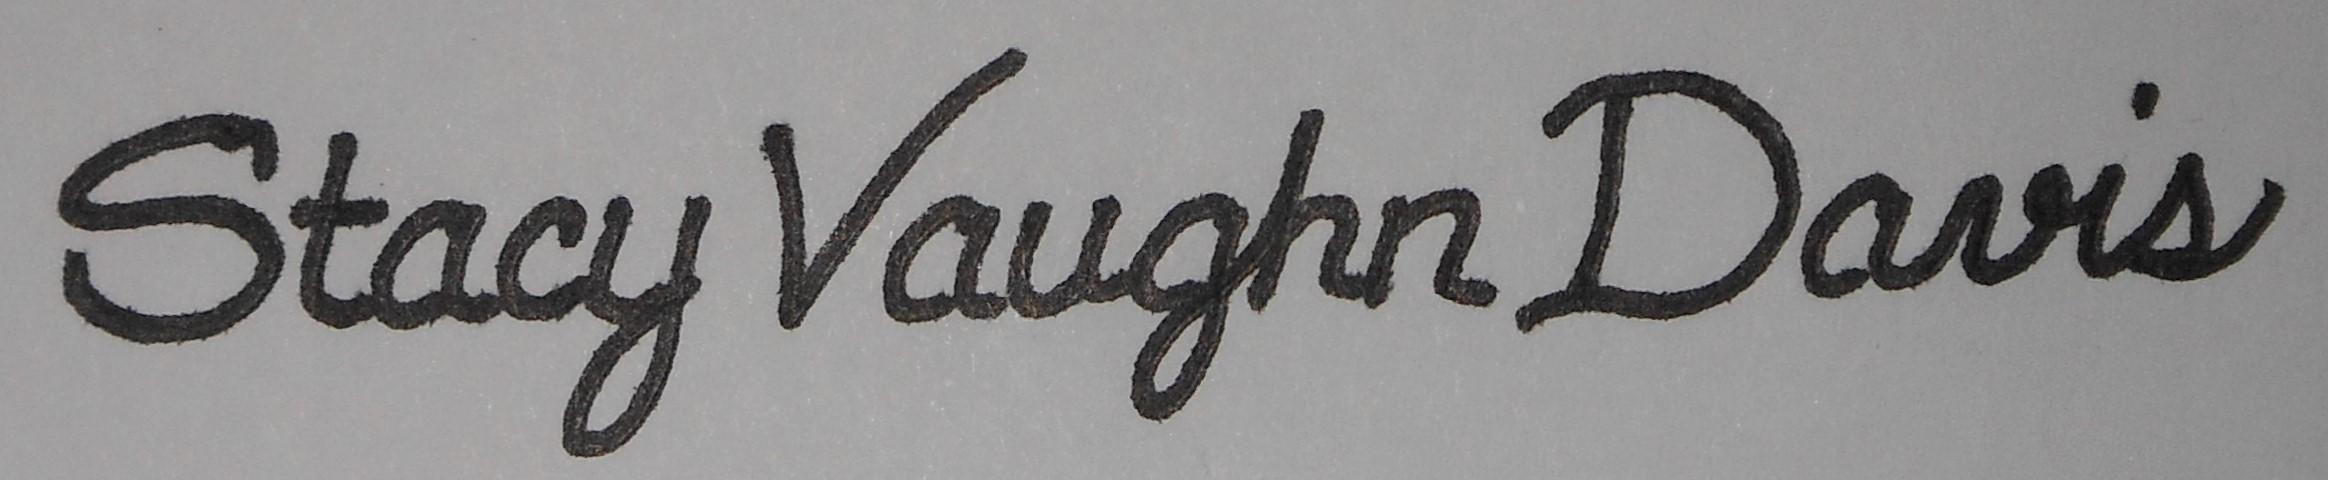 Stacy Davis's Signature